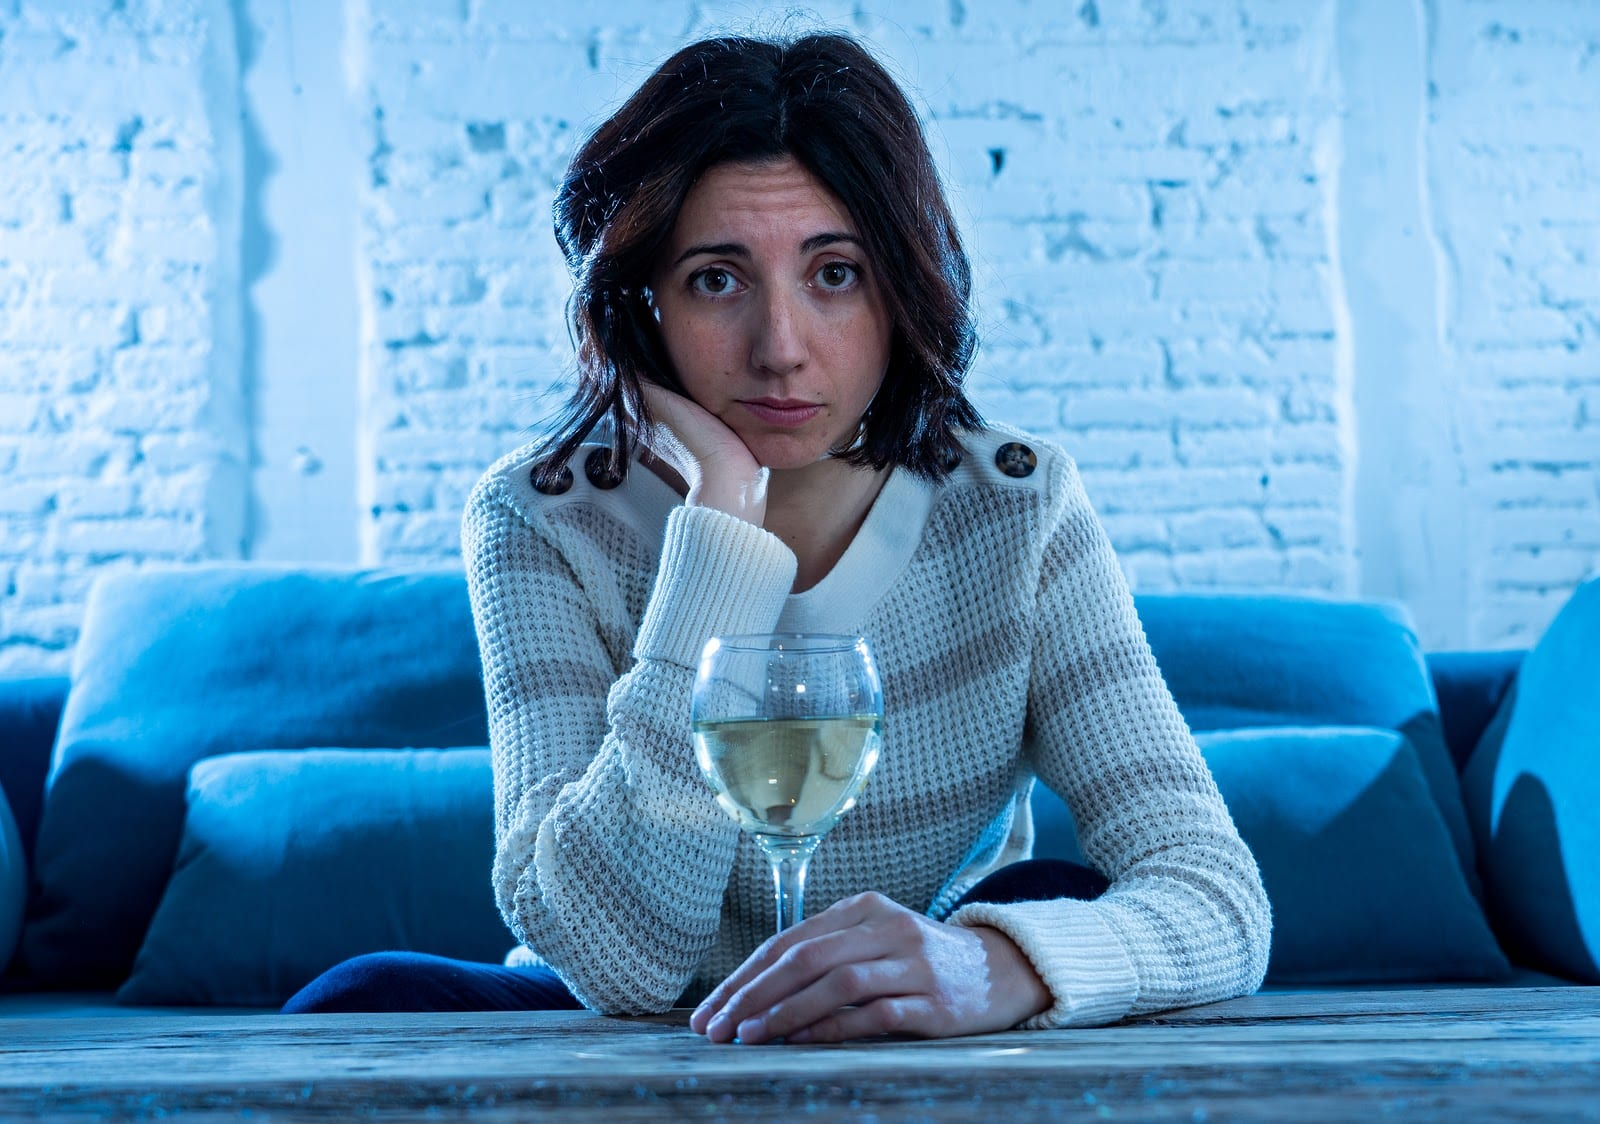 Woman drinking wine on a couch